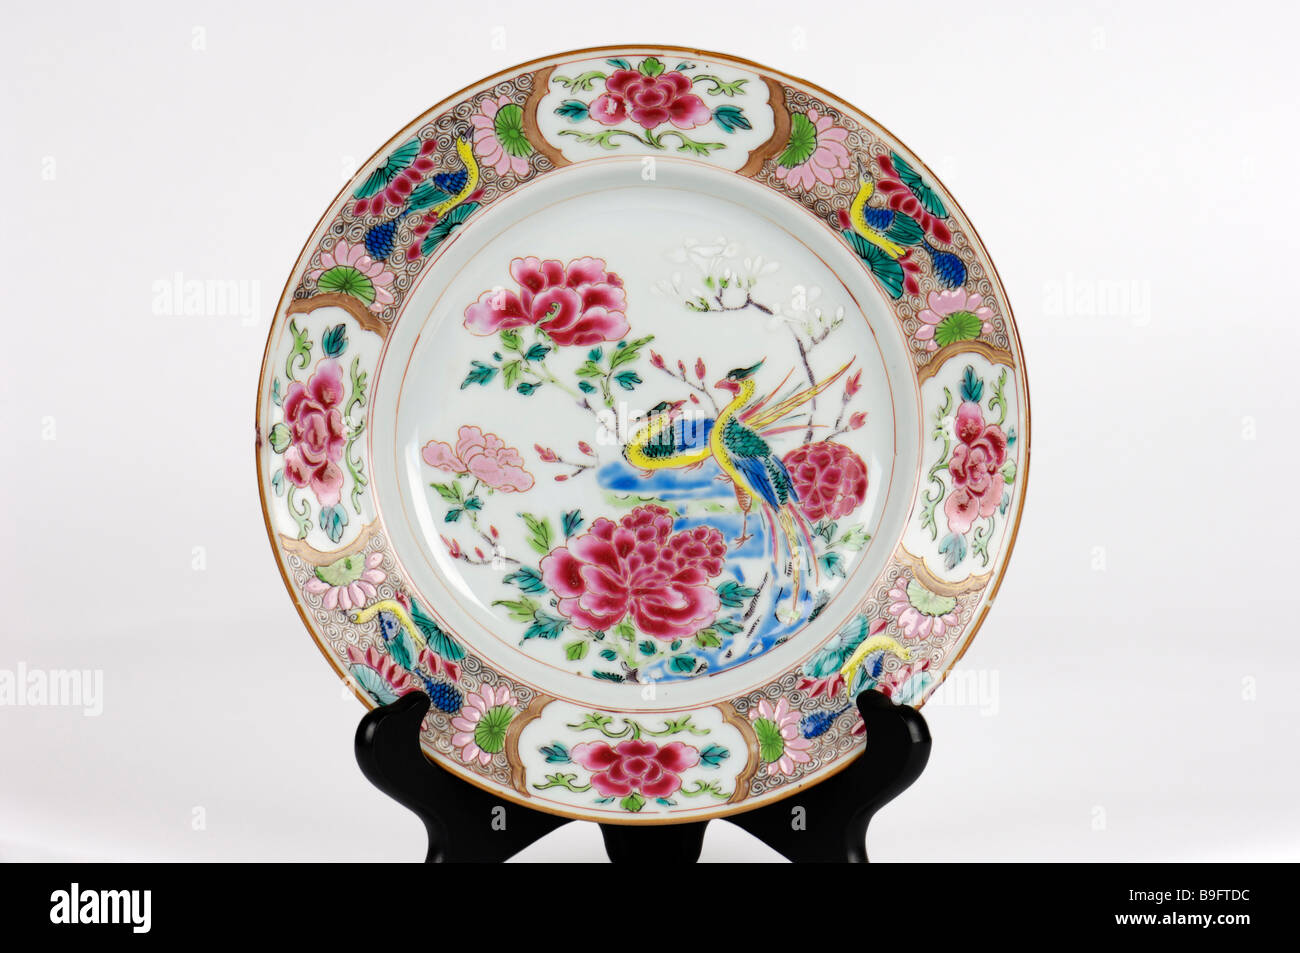 A hand painted antique Chinese porcelain plate decorated with birds in bright enamels circa 1760. & A hand painted antique Chinese porcelain plate decorated with birds ...